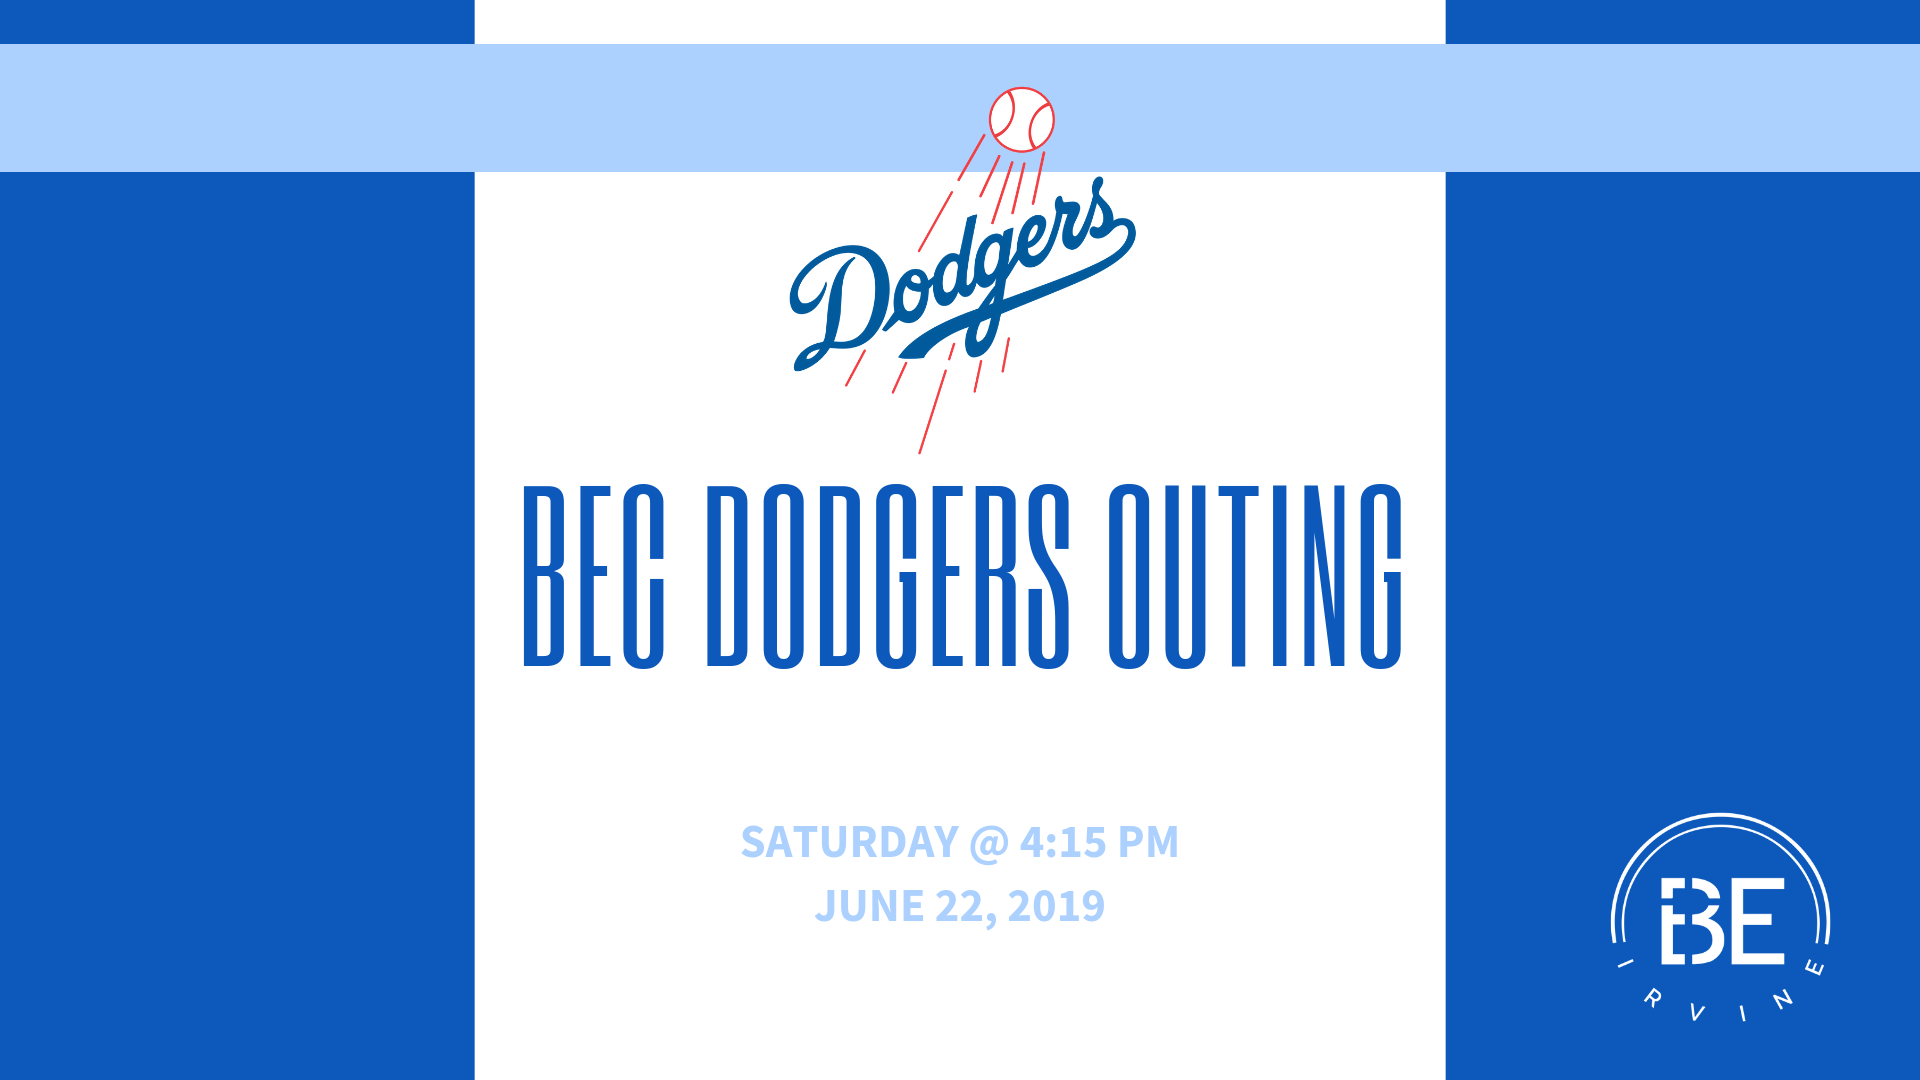 BEC Dodgers Outing-5.png